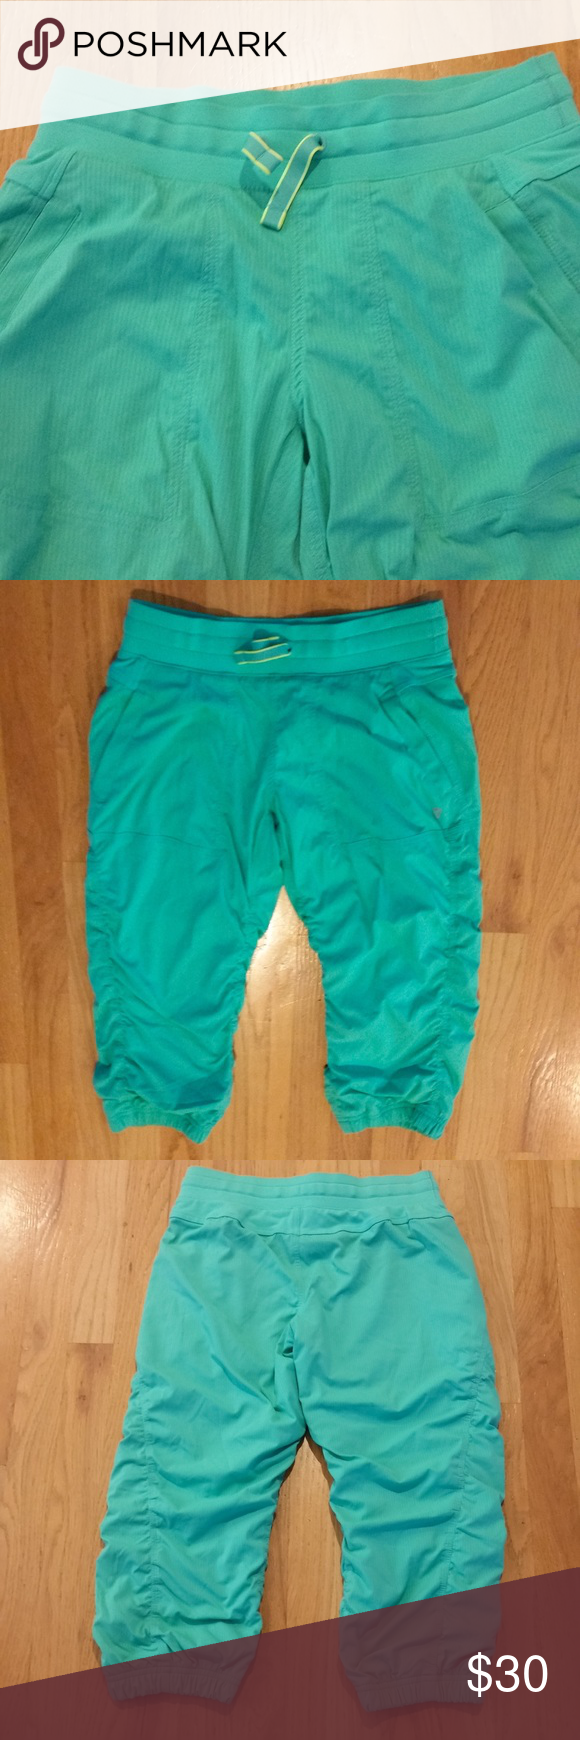 Ivivva by Lululemon Lined cropped pant Cropped and lined Ivivva by Lululemon pant. Color is mint green with fluorescent yellow accent on drawstring. Girls size 14 (women's size 4). 94% nylon, 6% spandex. These are in like new condition. Ivivva Pants